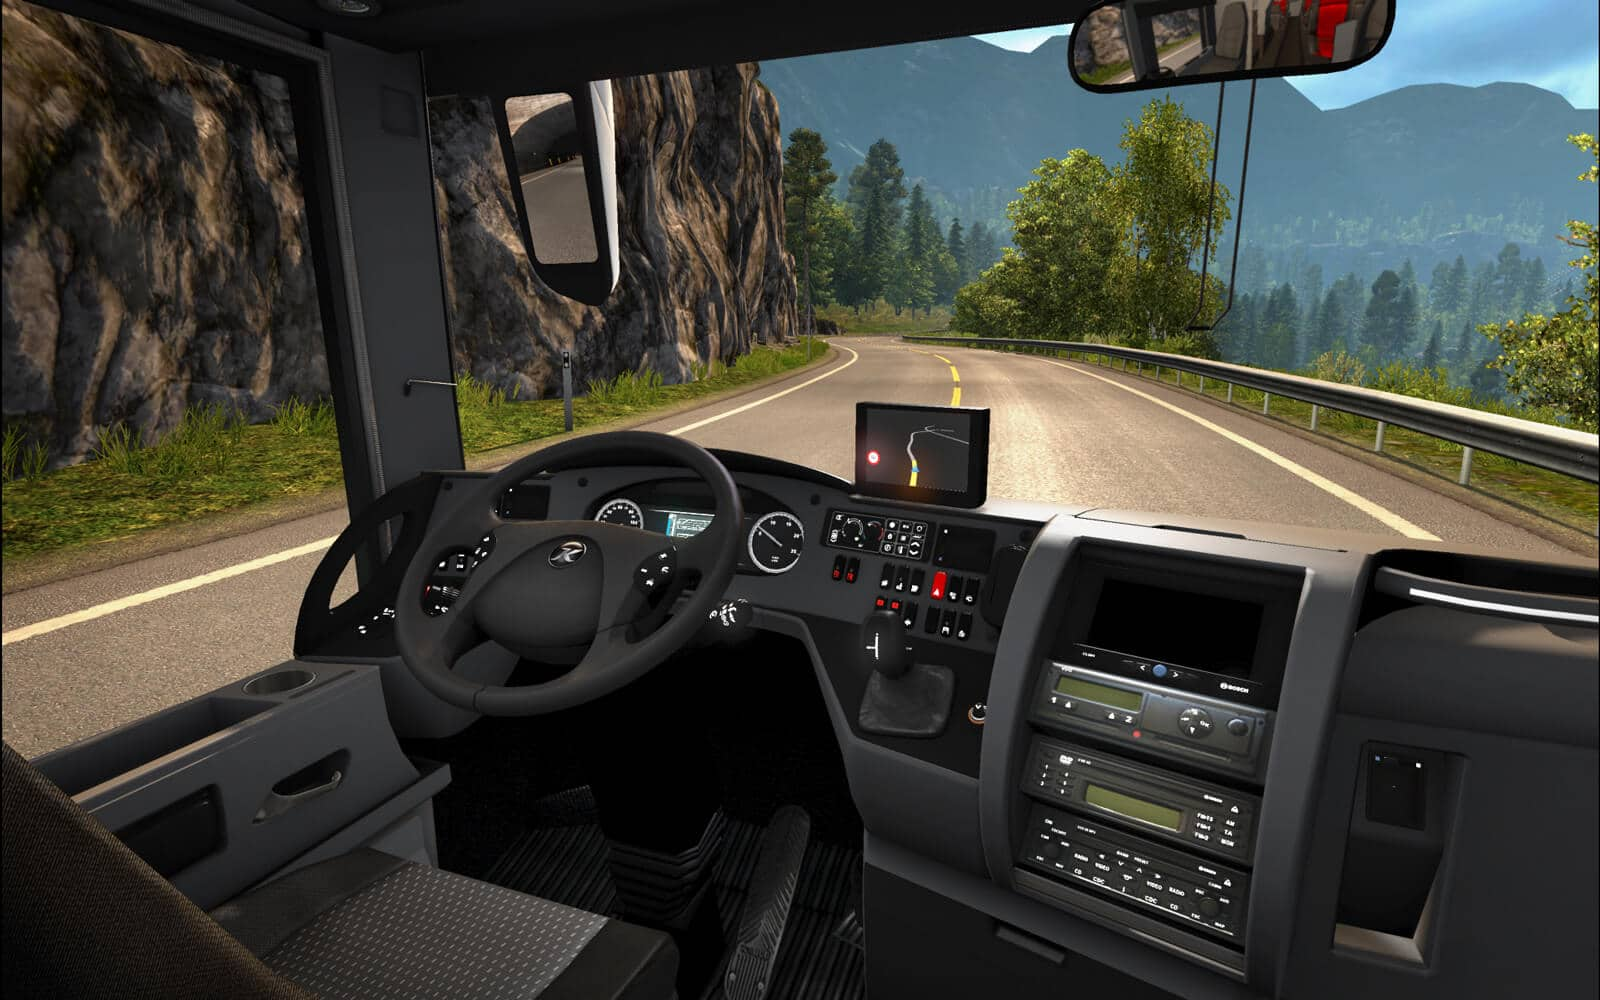 Euro Bus Simulator Pc - Free downloads and reviews - …